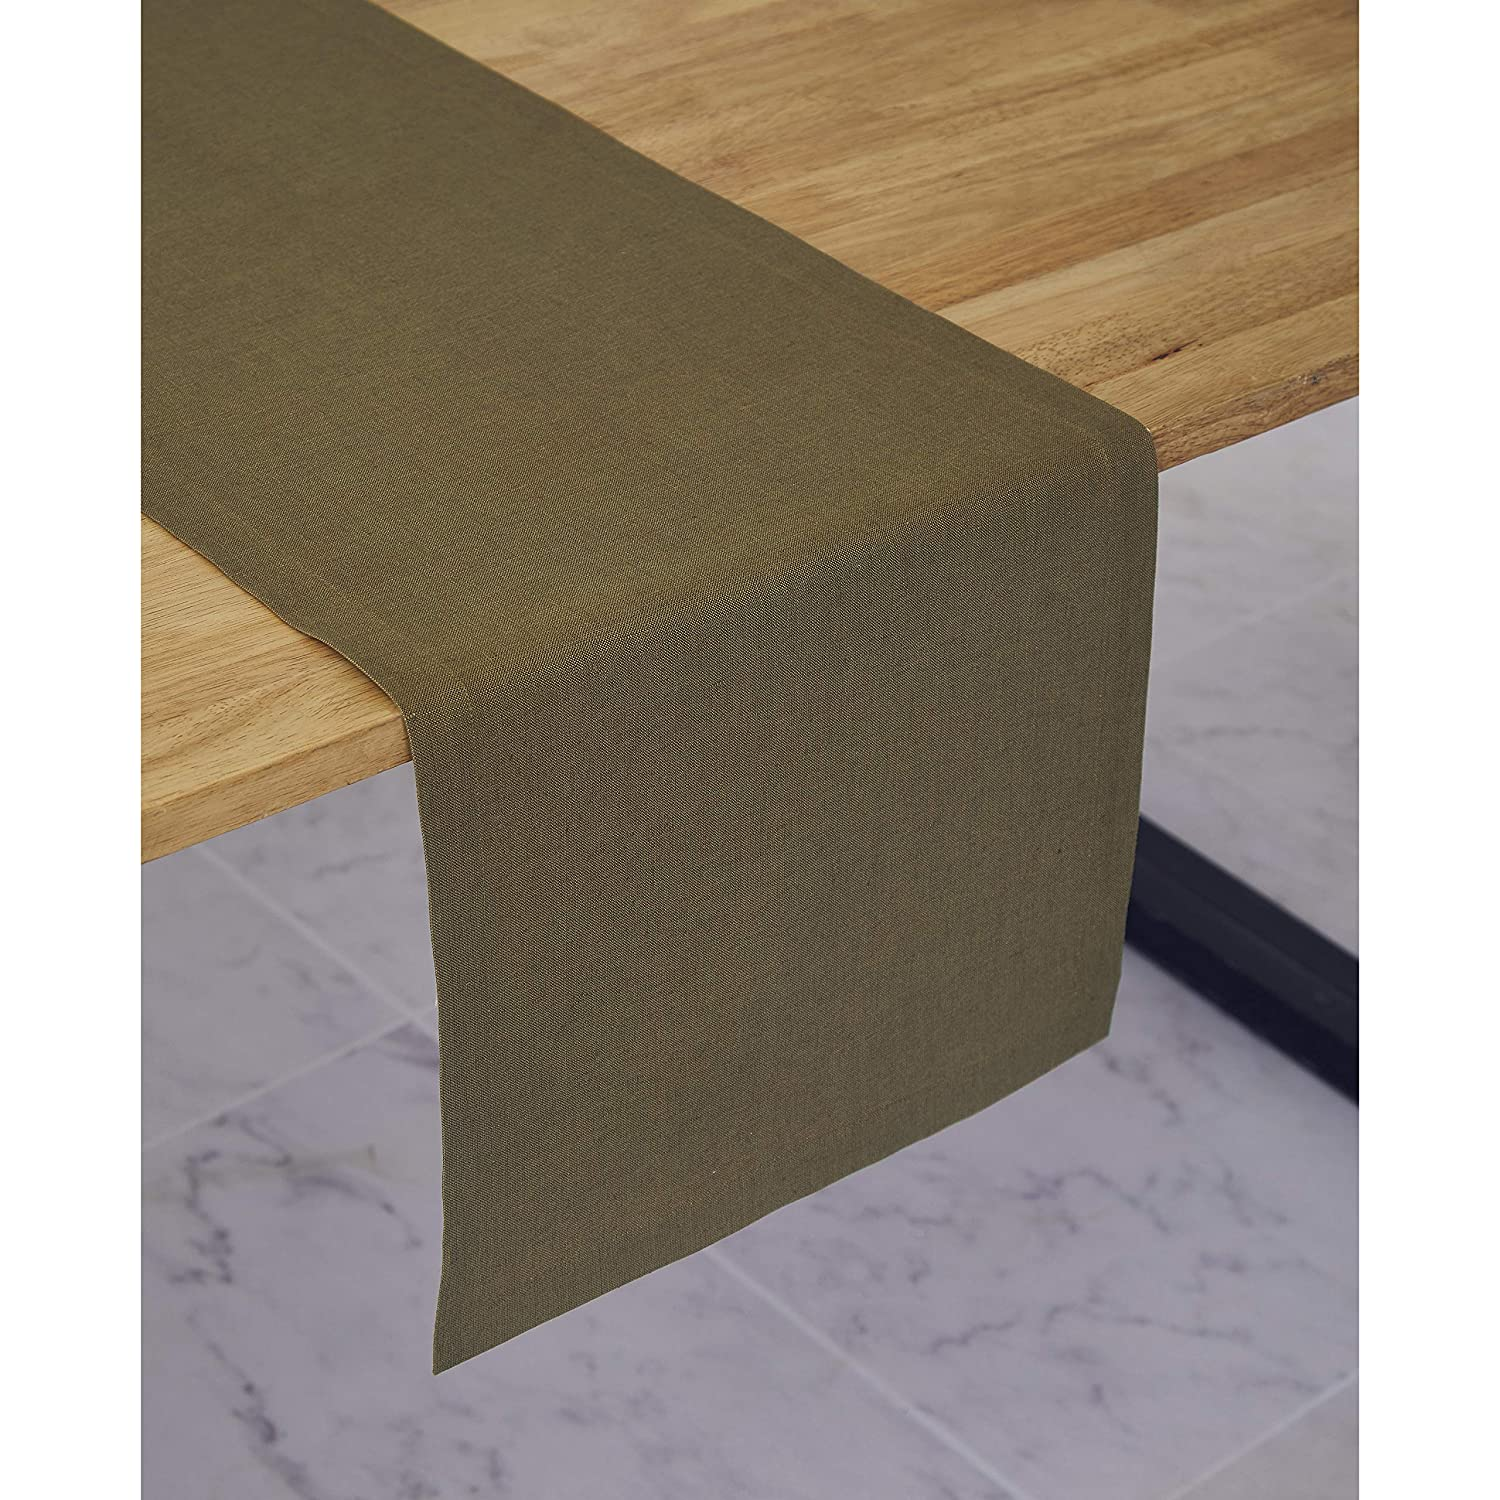 1bfff1300c461 Solino Home Medium Weight Linen Table Runner - 100% Pure Linen - 14 x 90  Inch, Olive